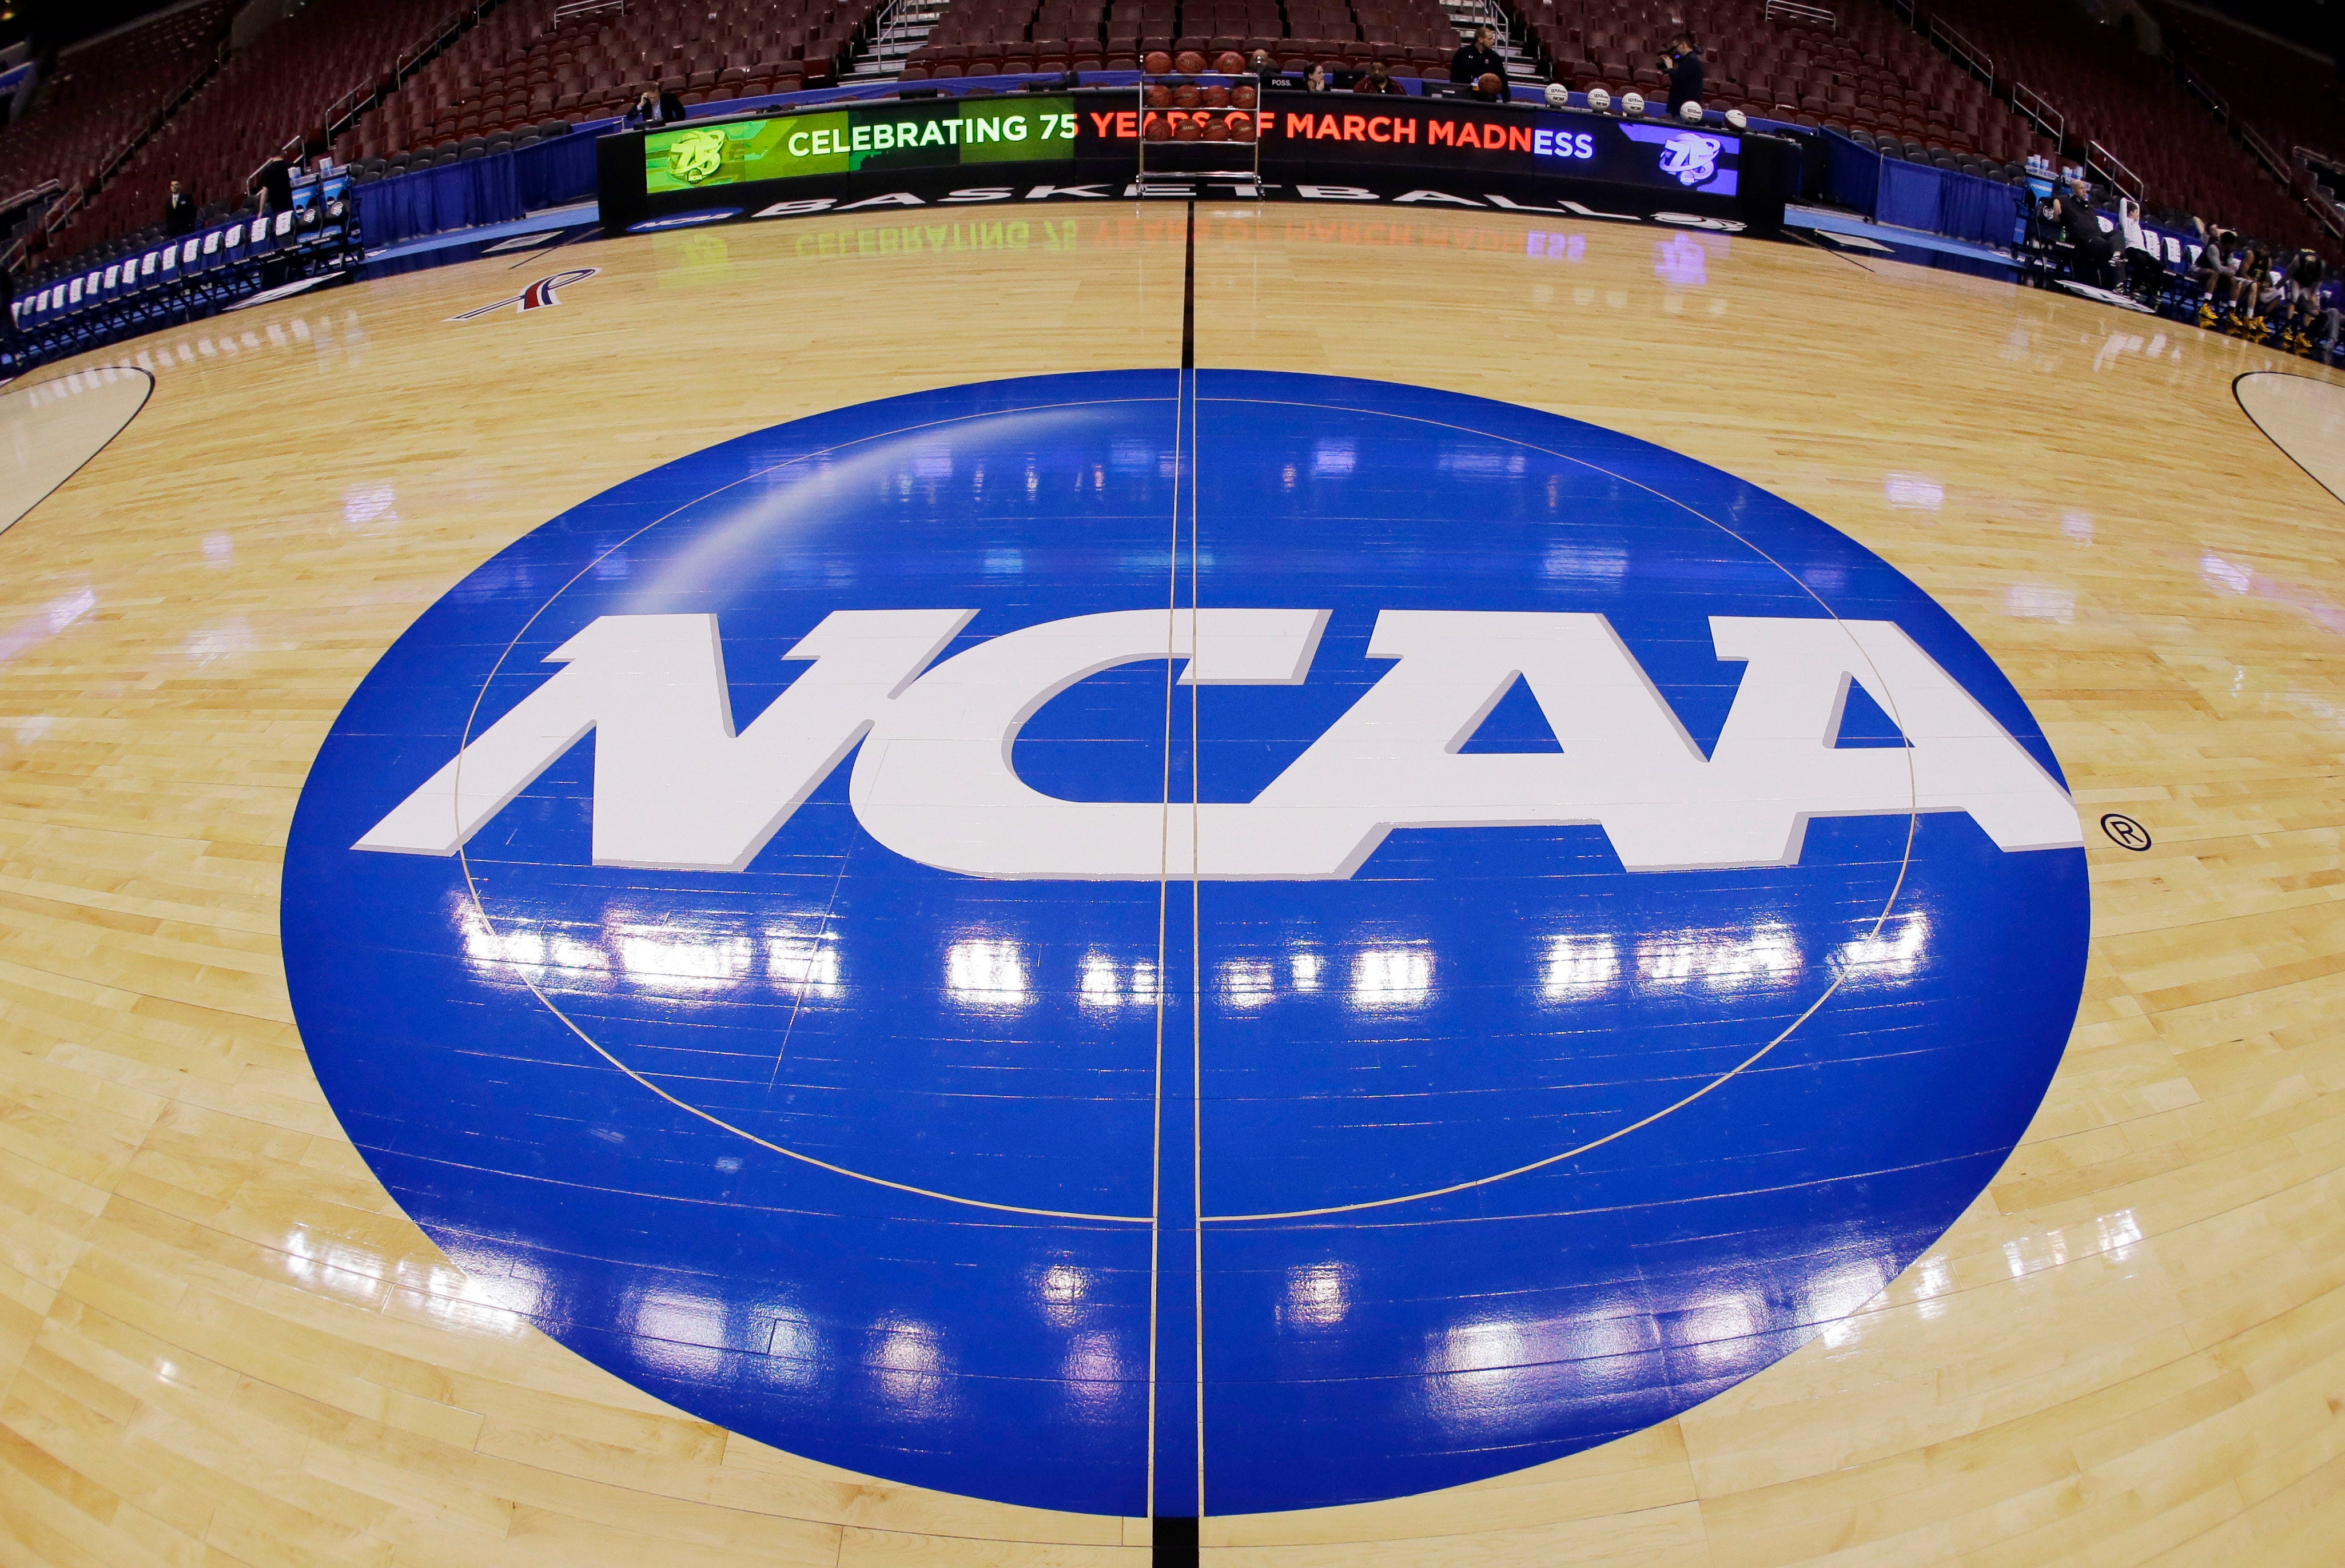 Lawmakers forcing slow-moving NCAA to pick up the pace of change